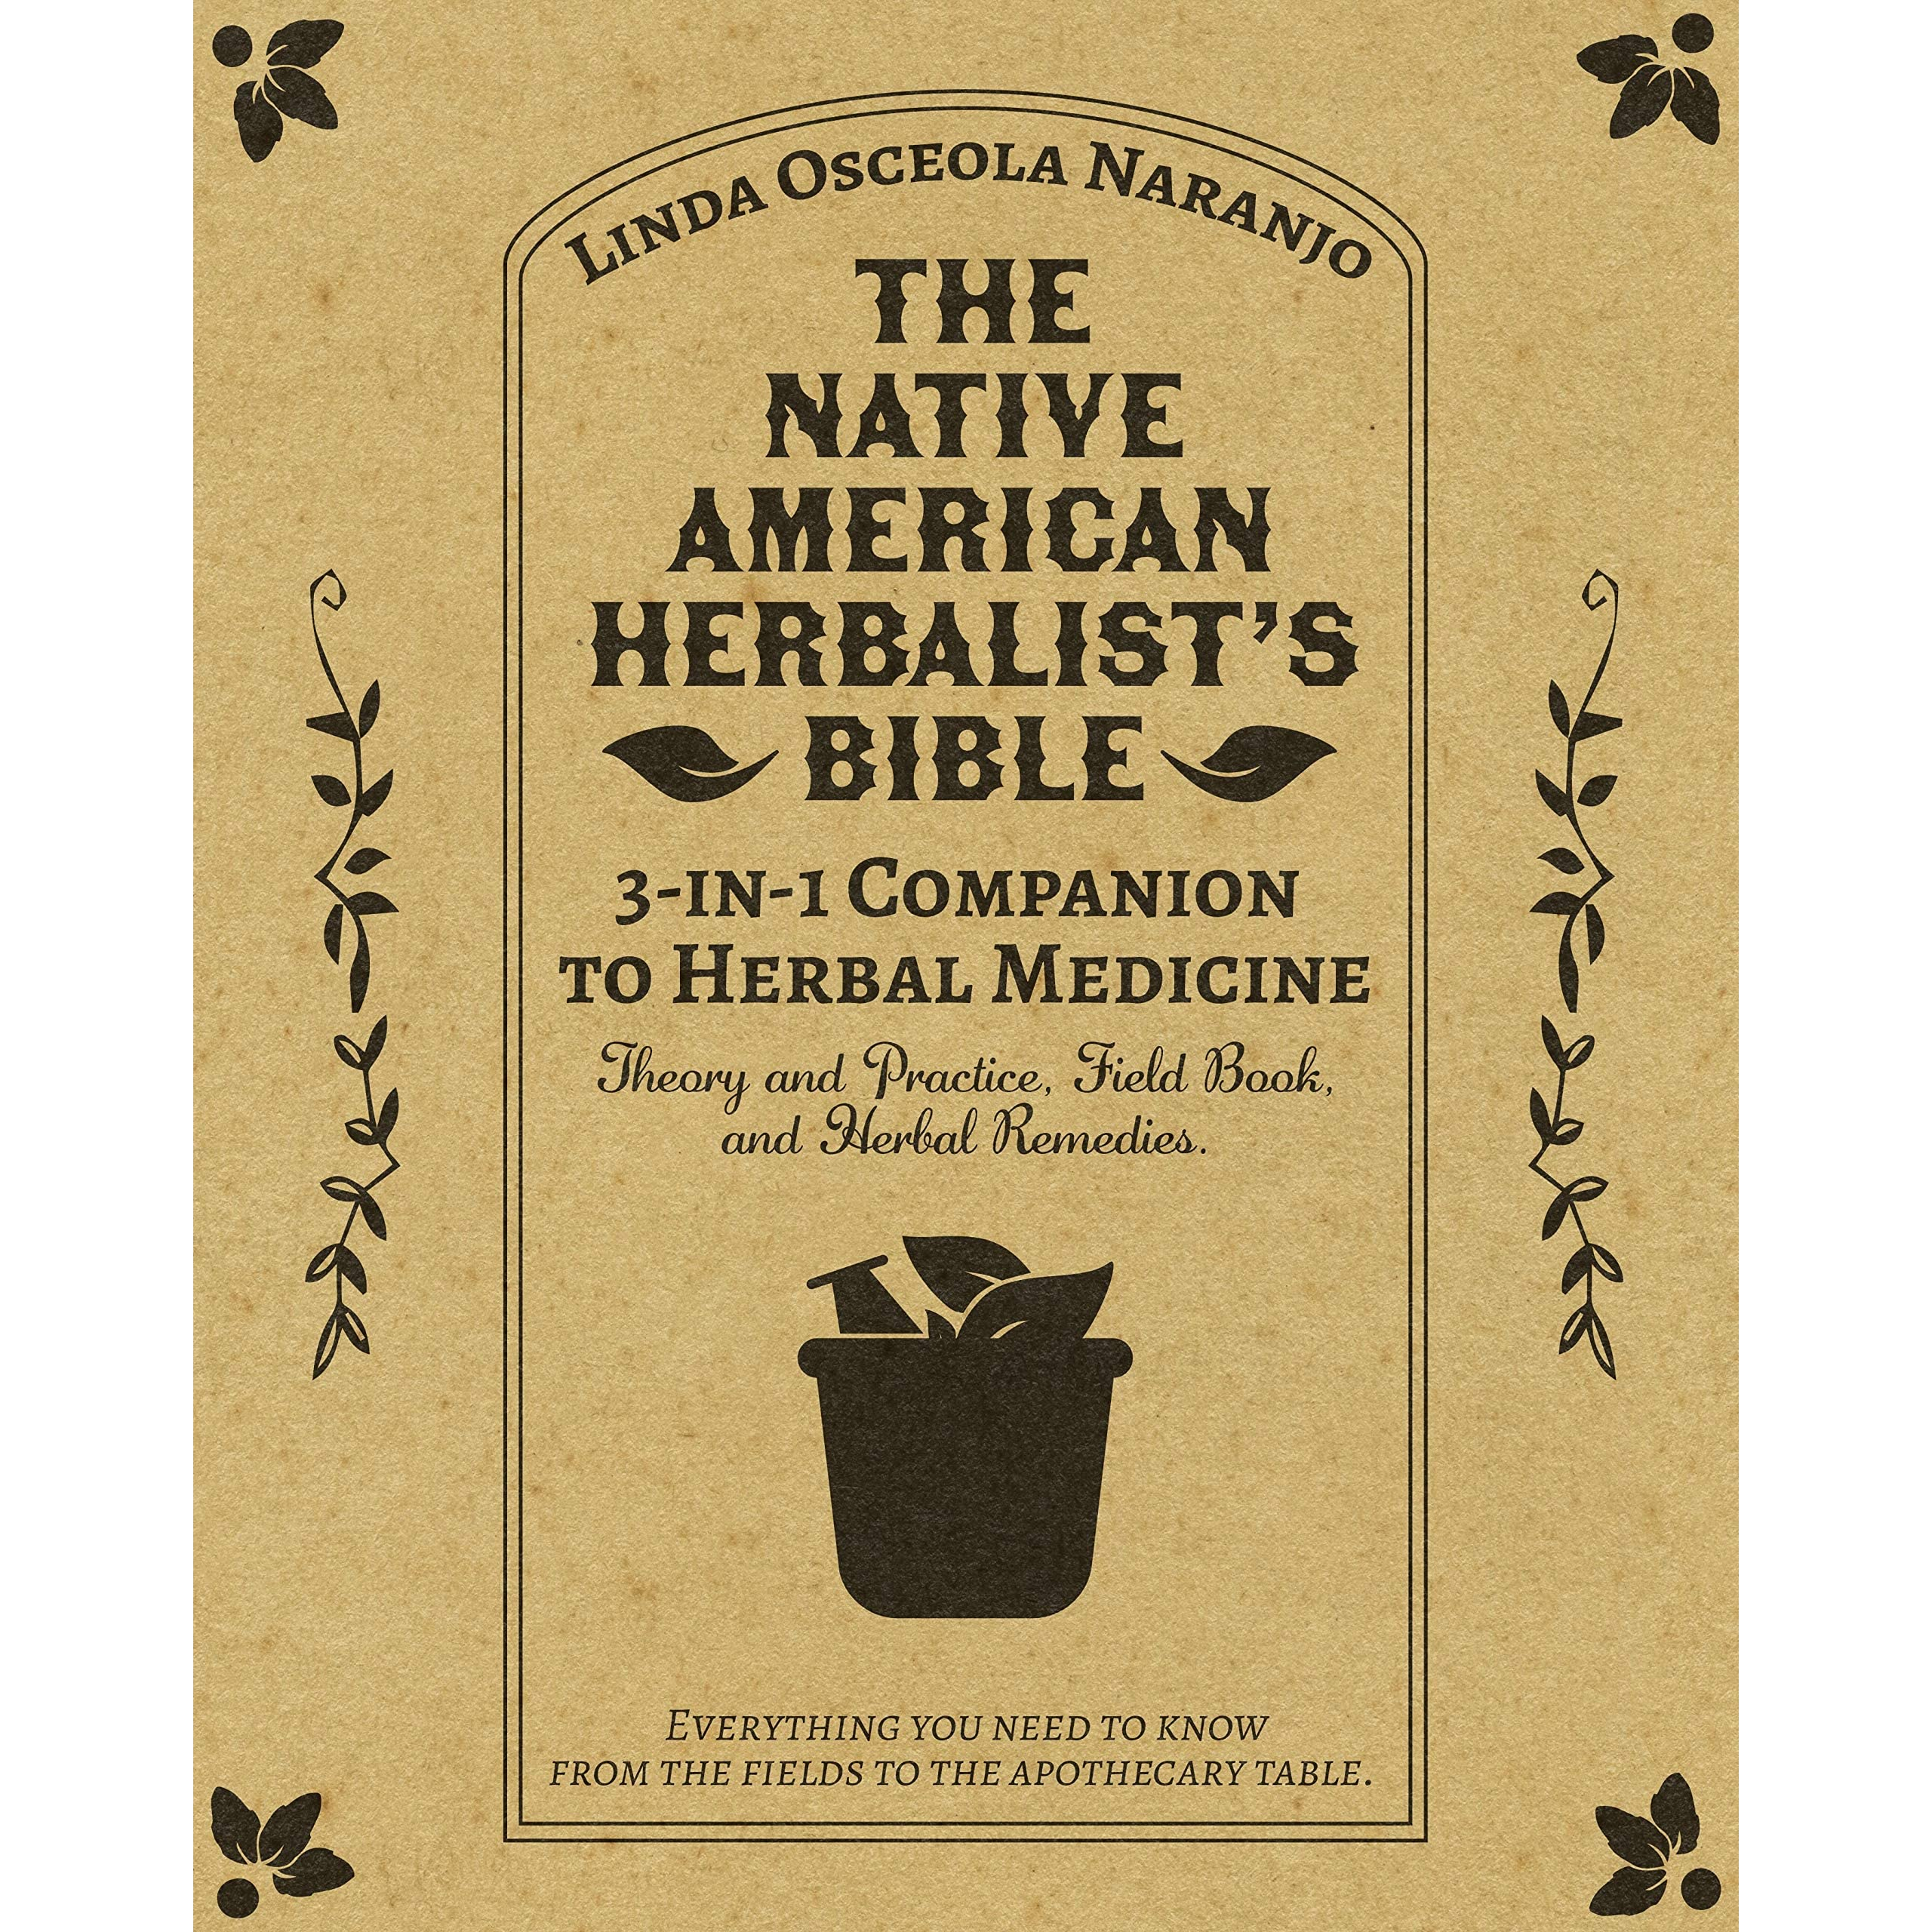 The Native American Herbalist's Bible